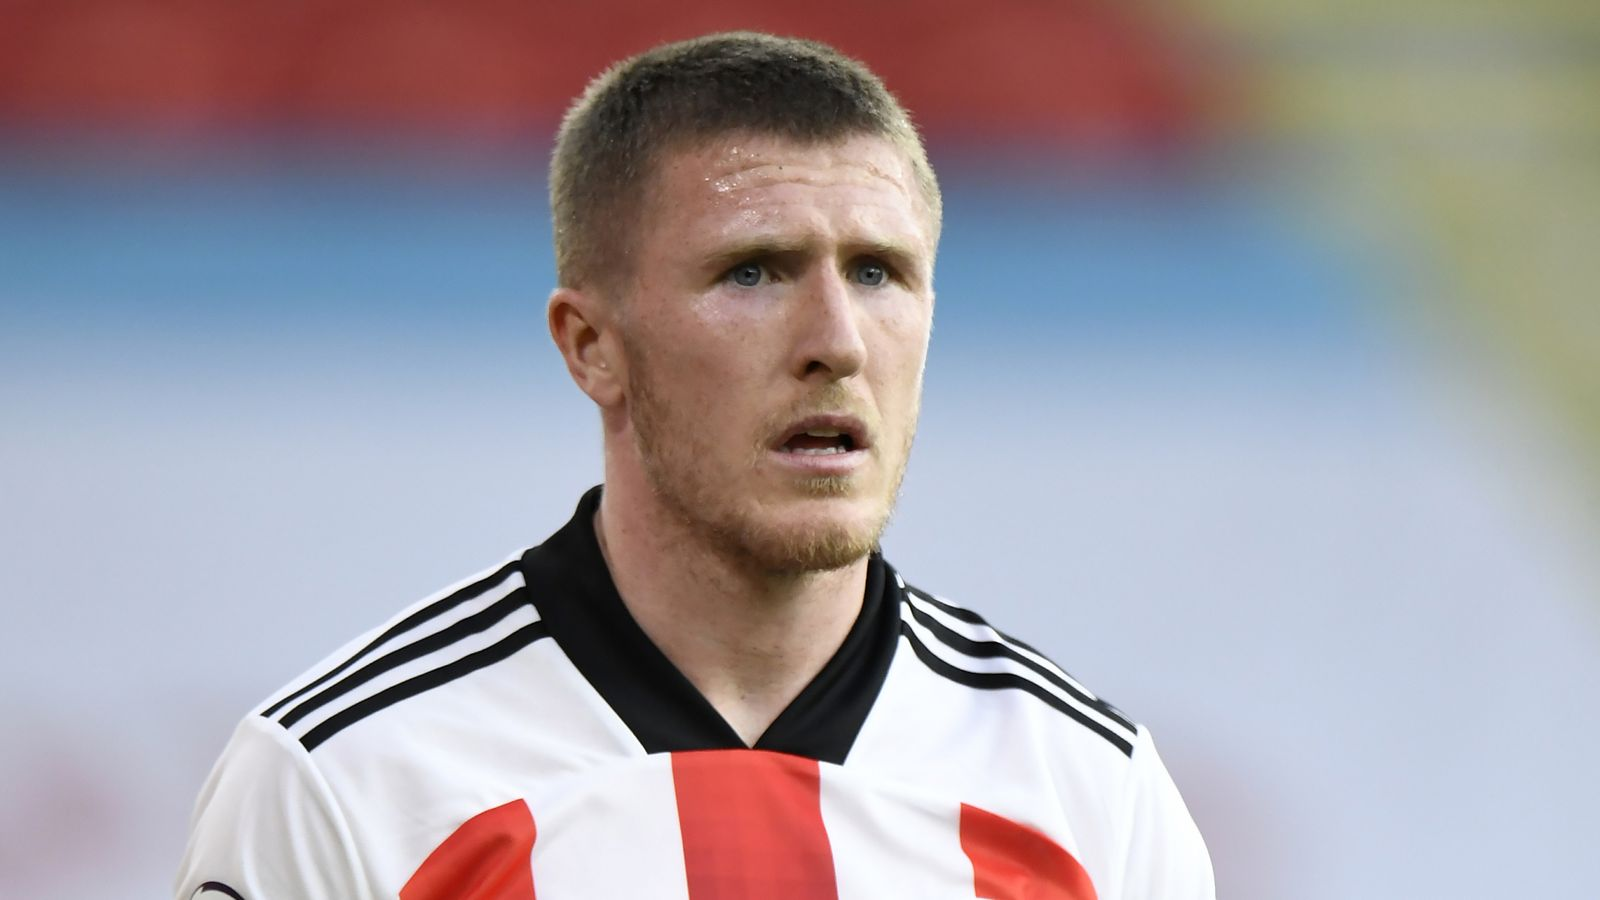 Rangers sign John Lundstram on three-year deal after Sheffield United contract expires